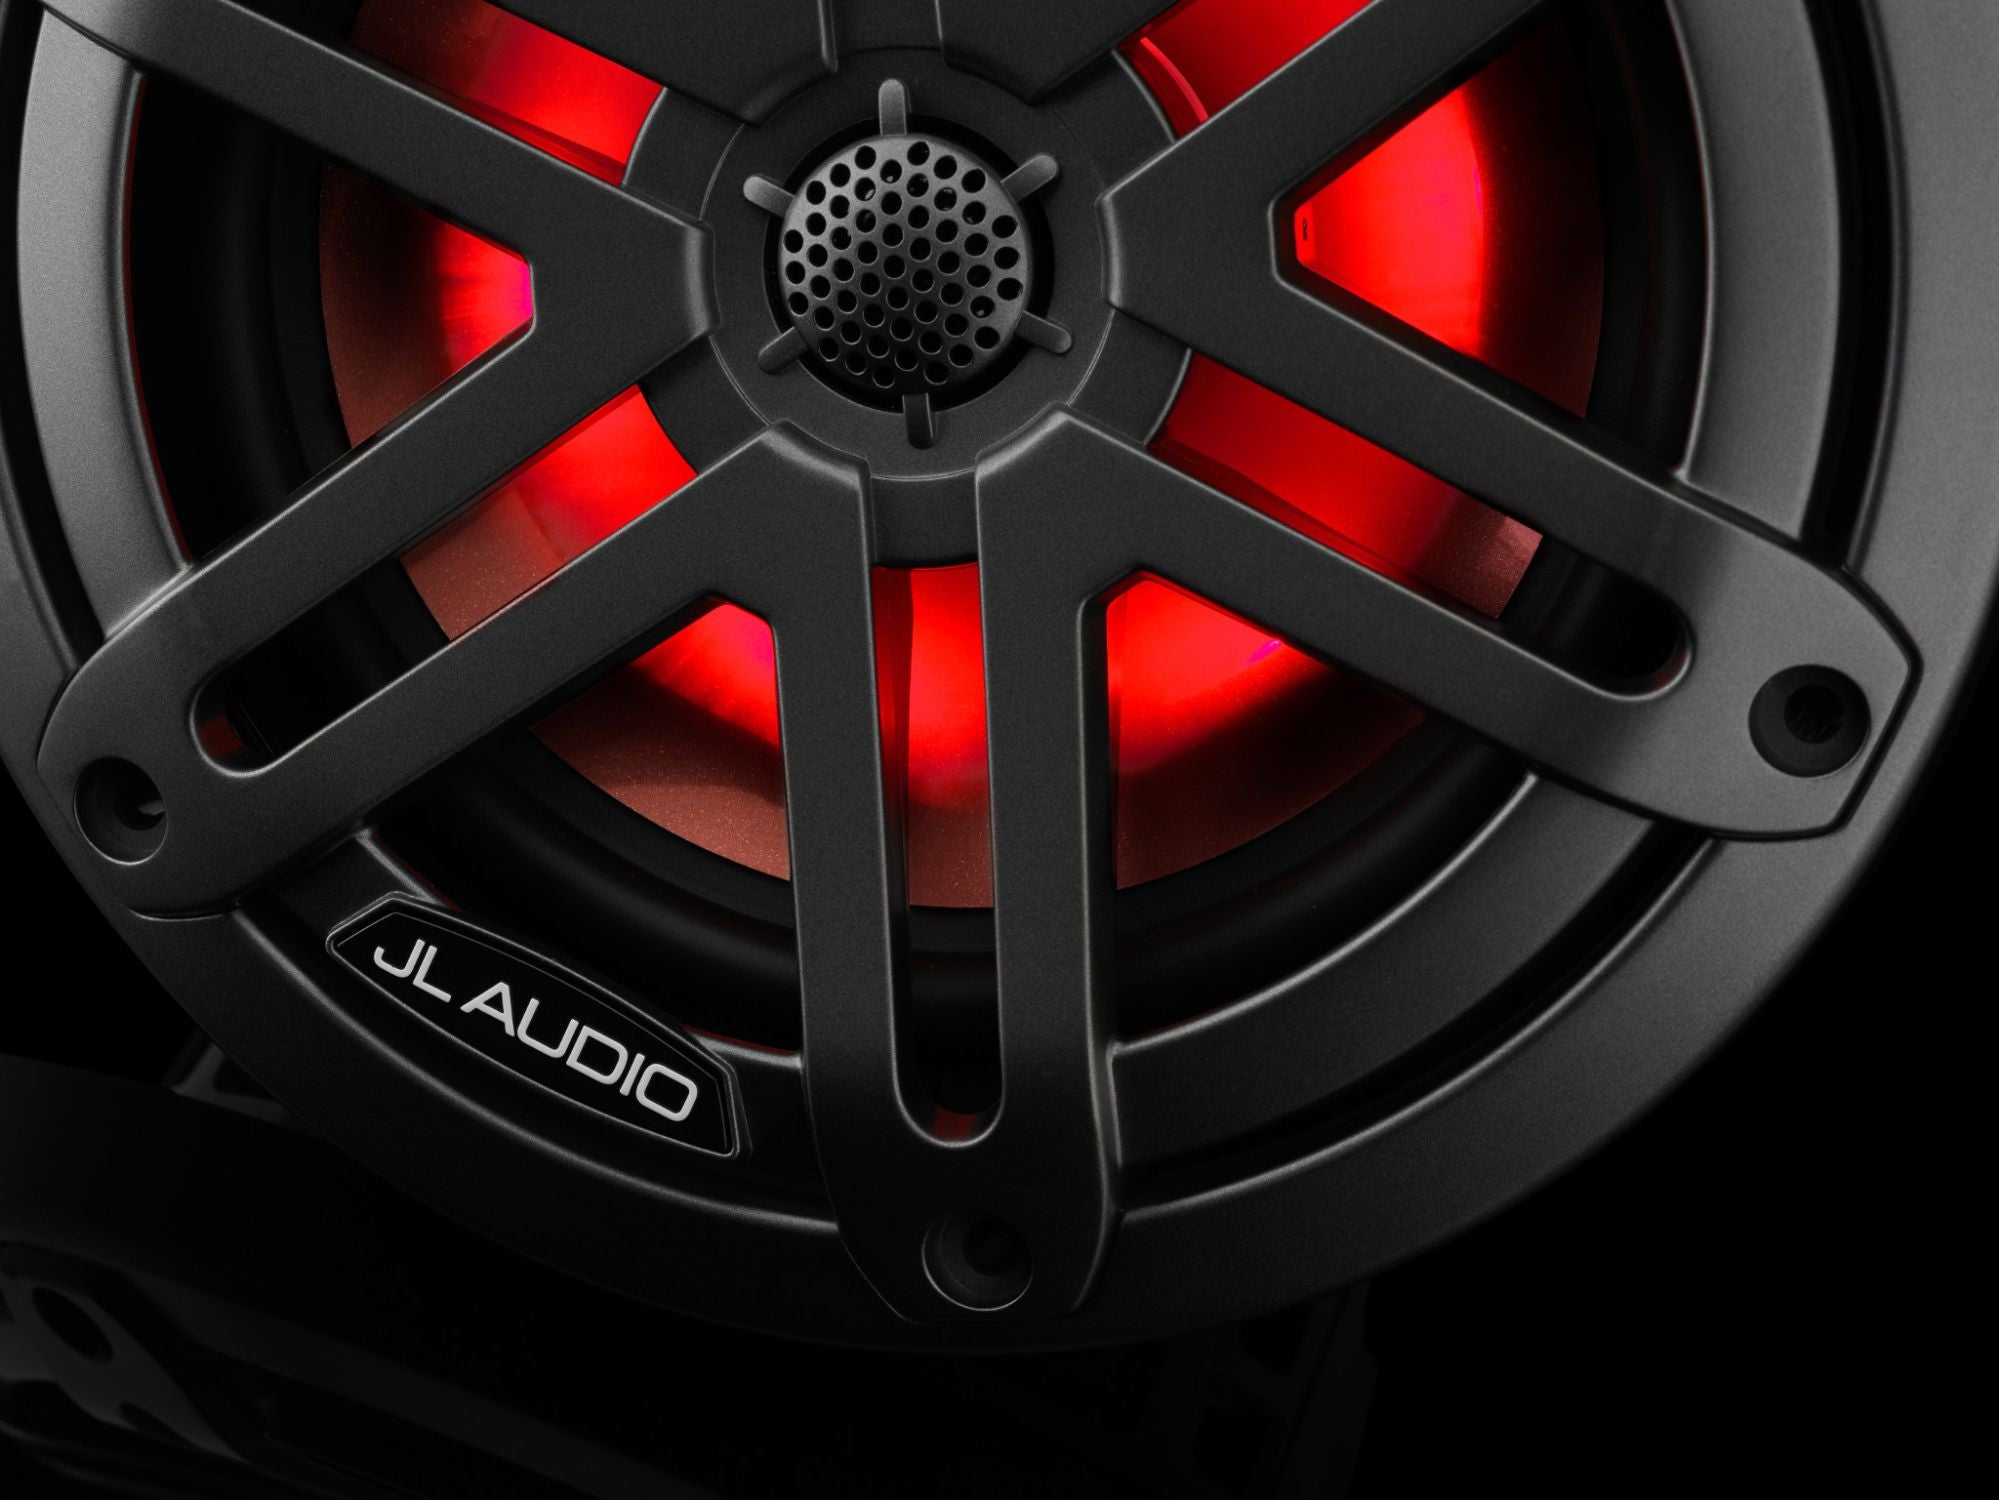 Detail of M3-650X-S-Gm-i Coaxial Speaker Lit with Red